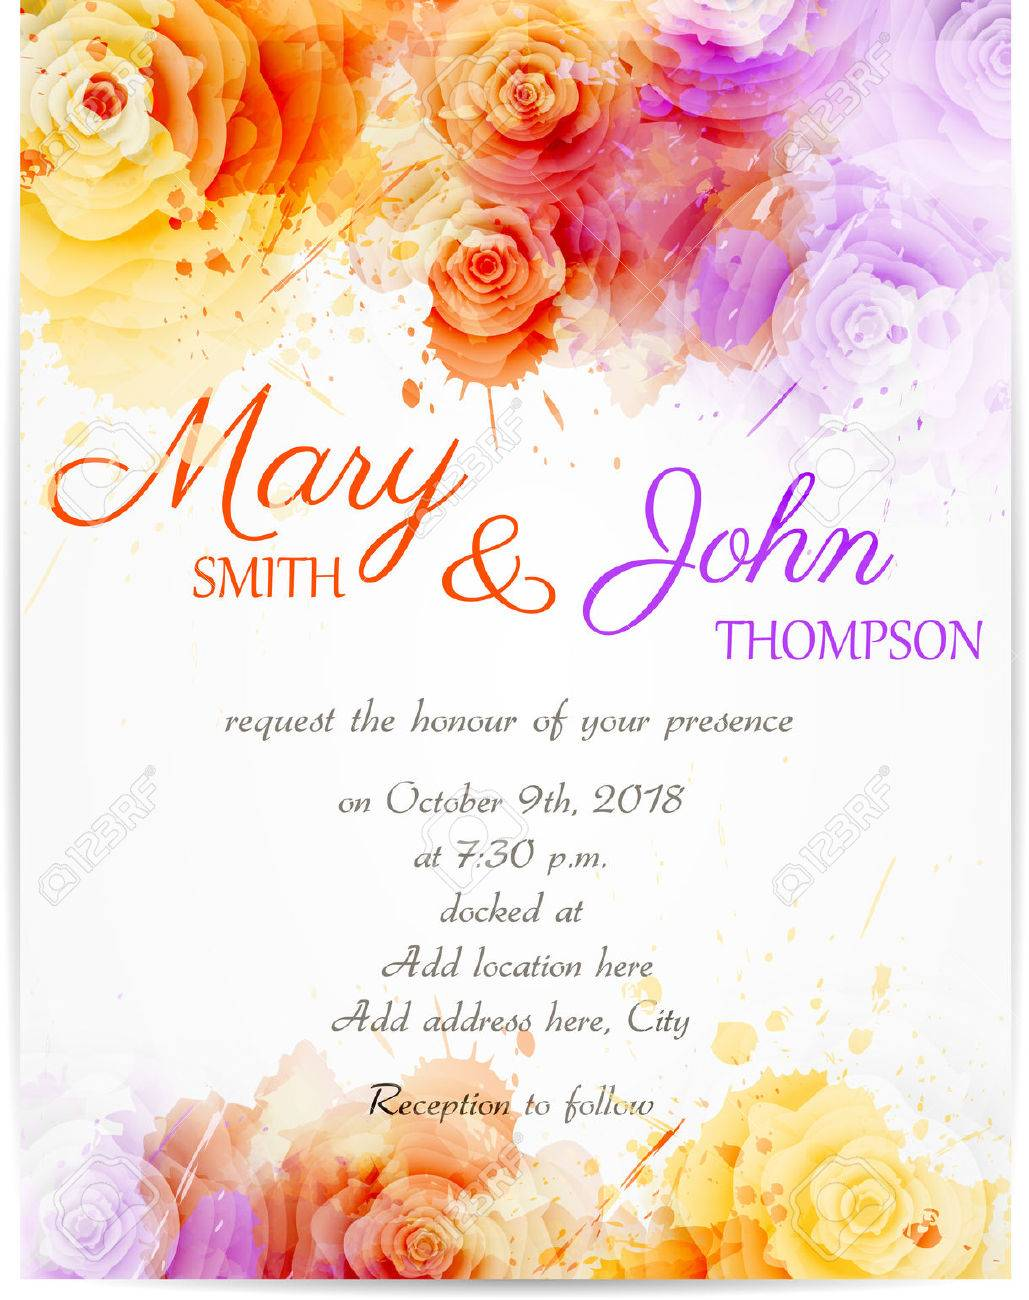 Wedding Invitation Template With Abstract Roses On Watercolor ...